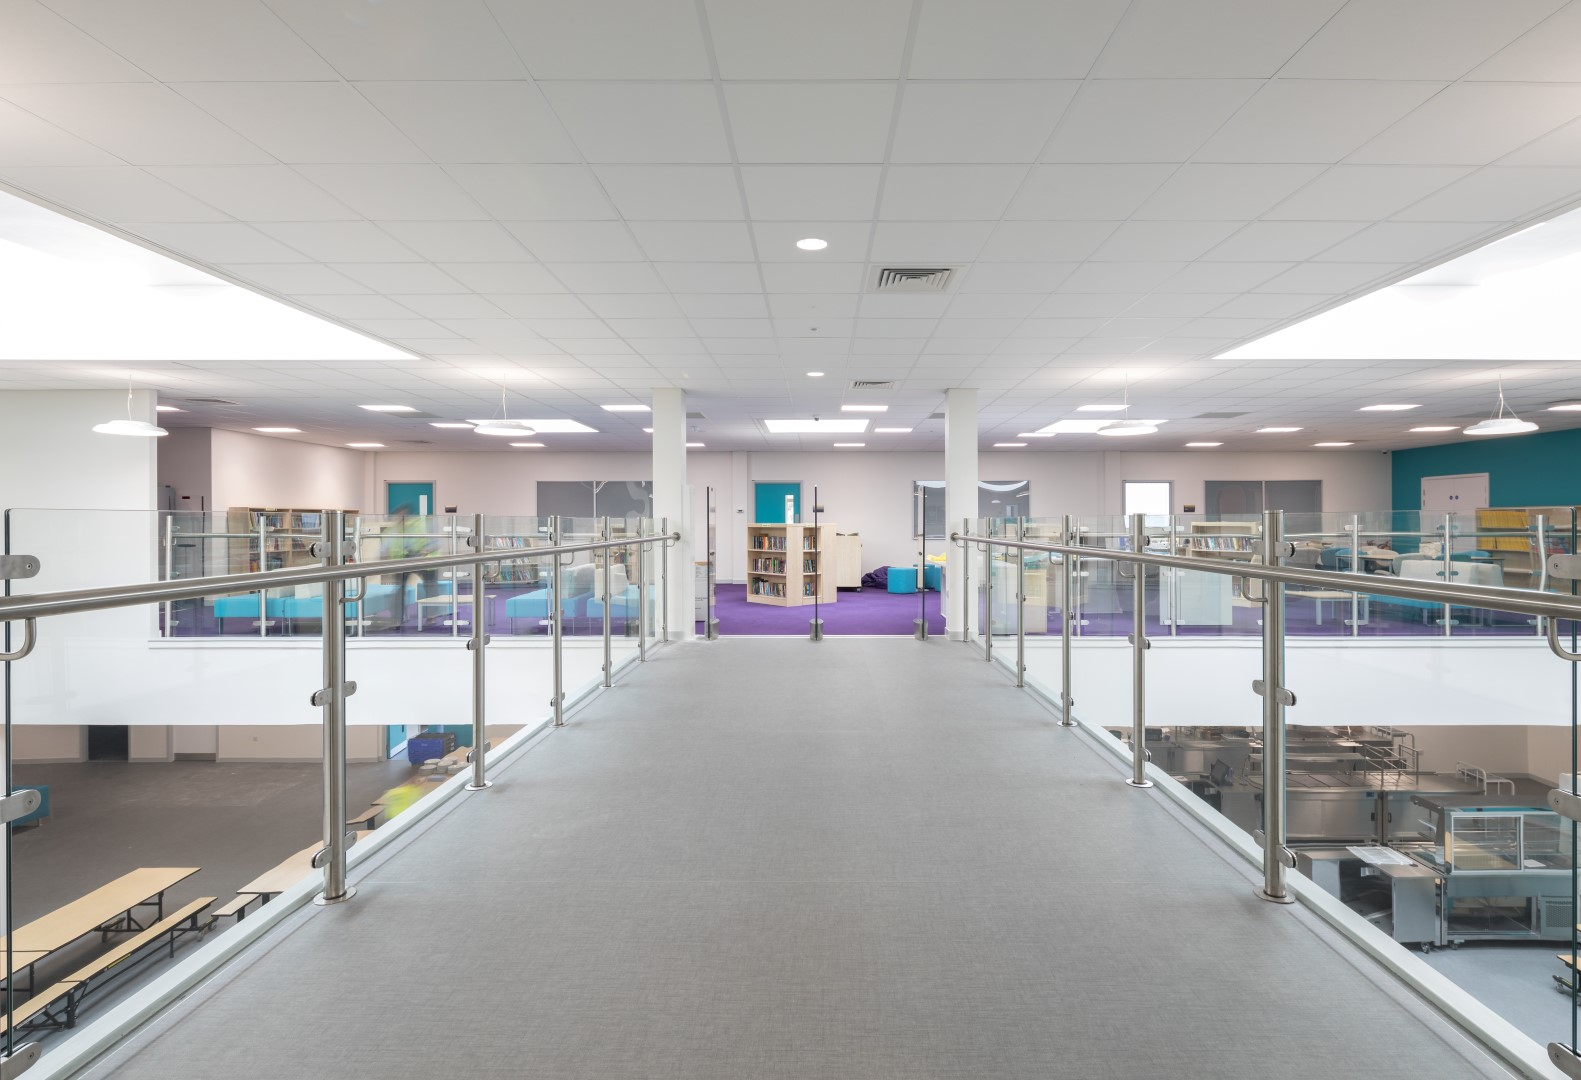 Altro serenade reduces noise and increases comfort at new £17m reach free school